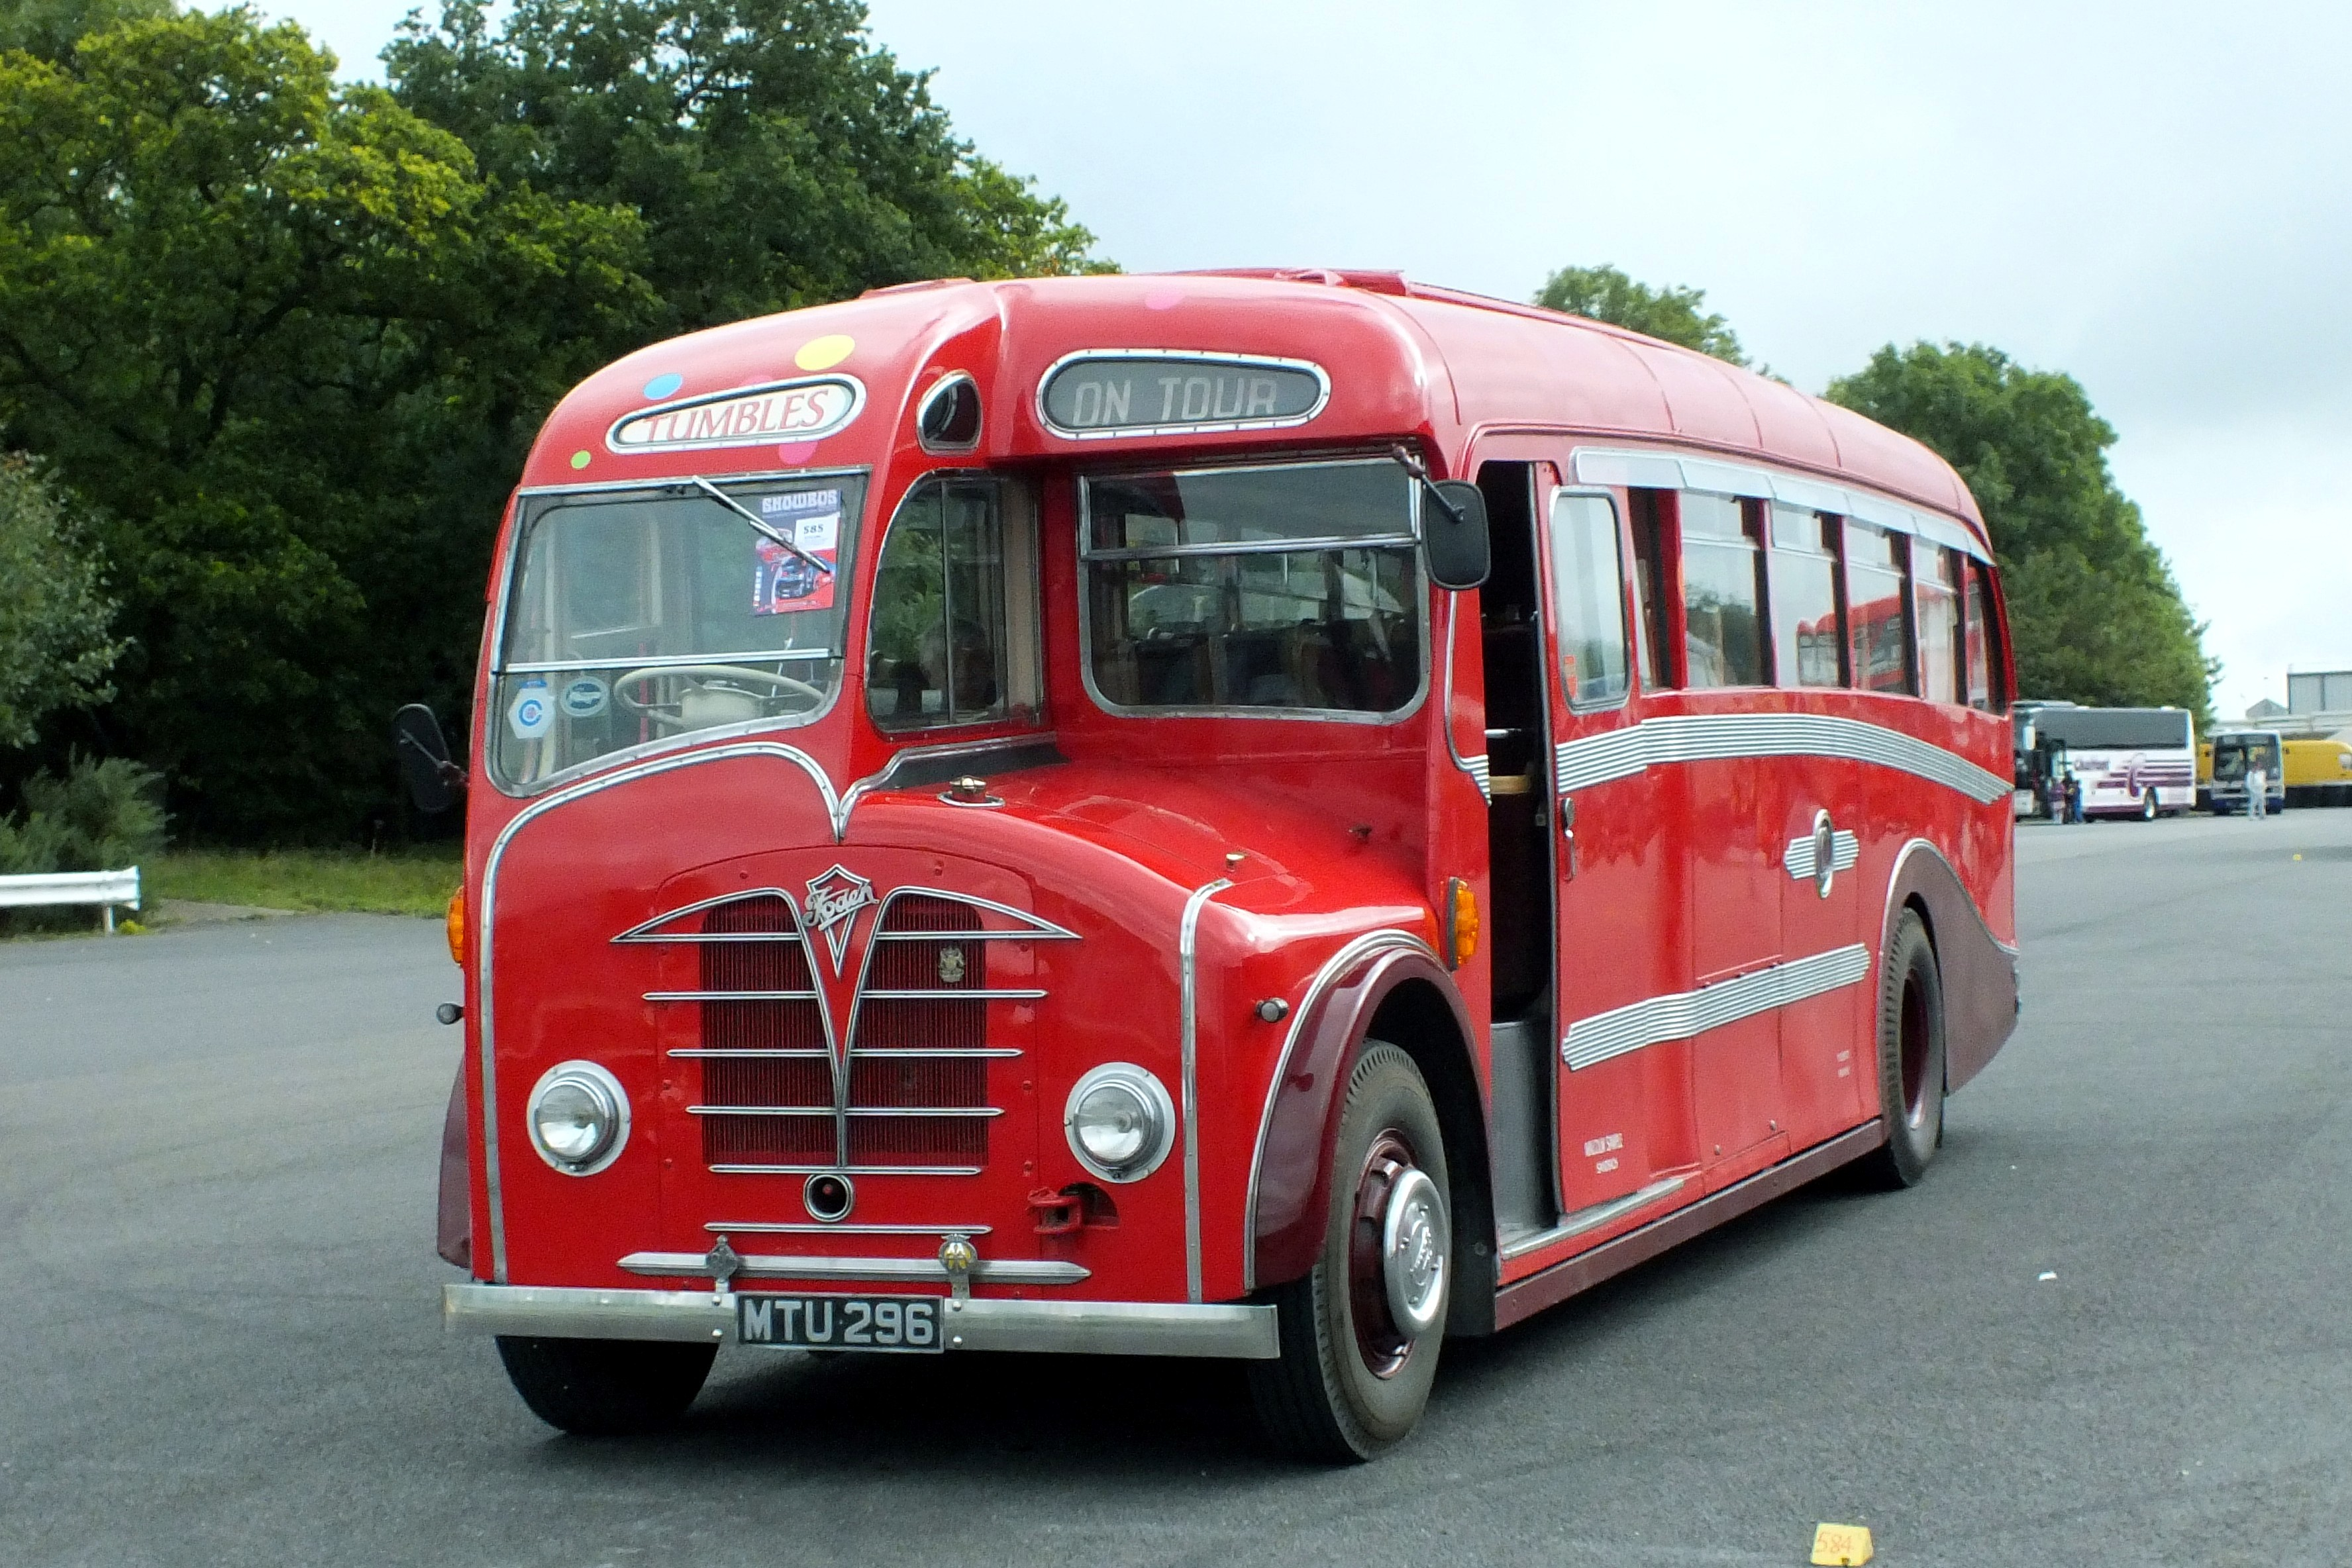 17 September 2017 Showbus, Donington. 373.jpg